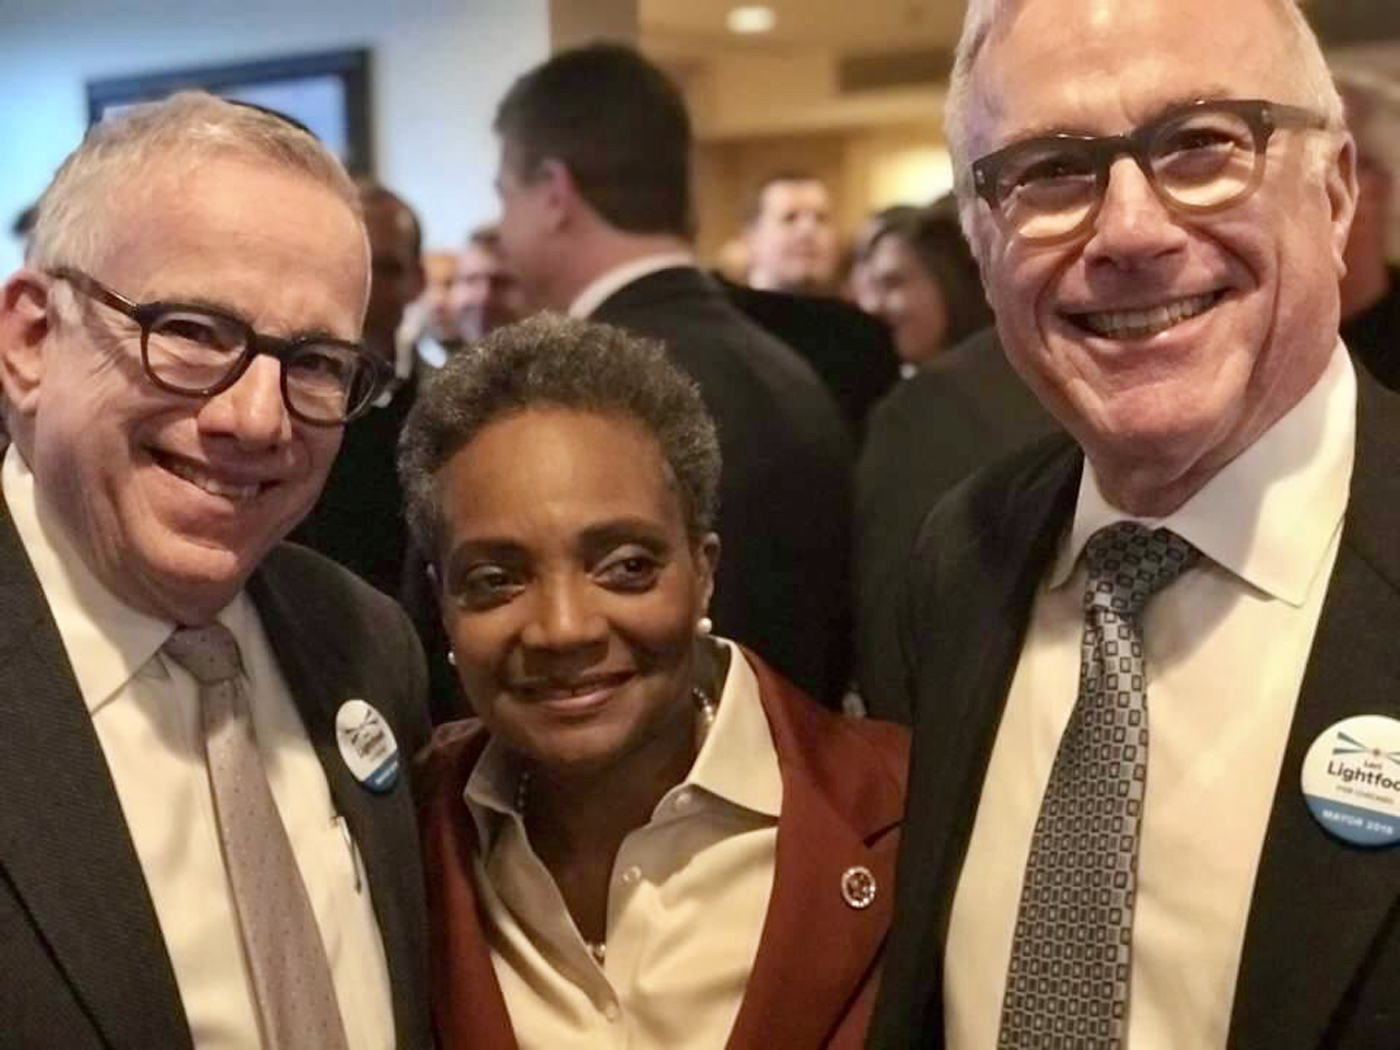 Michael Bauer (right) with Mayor Lori Lightfoot and his husband, Roger Simon. Bauer chaired Lightfoot's campaign for mayor.